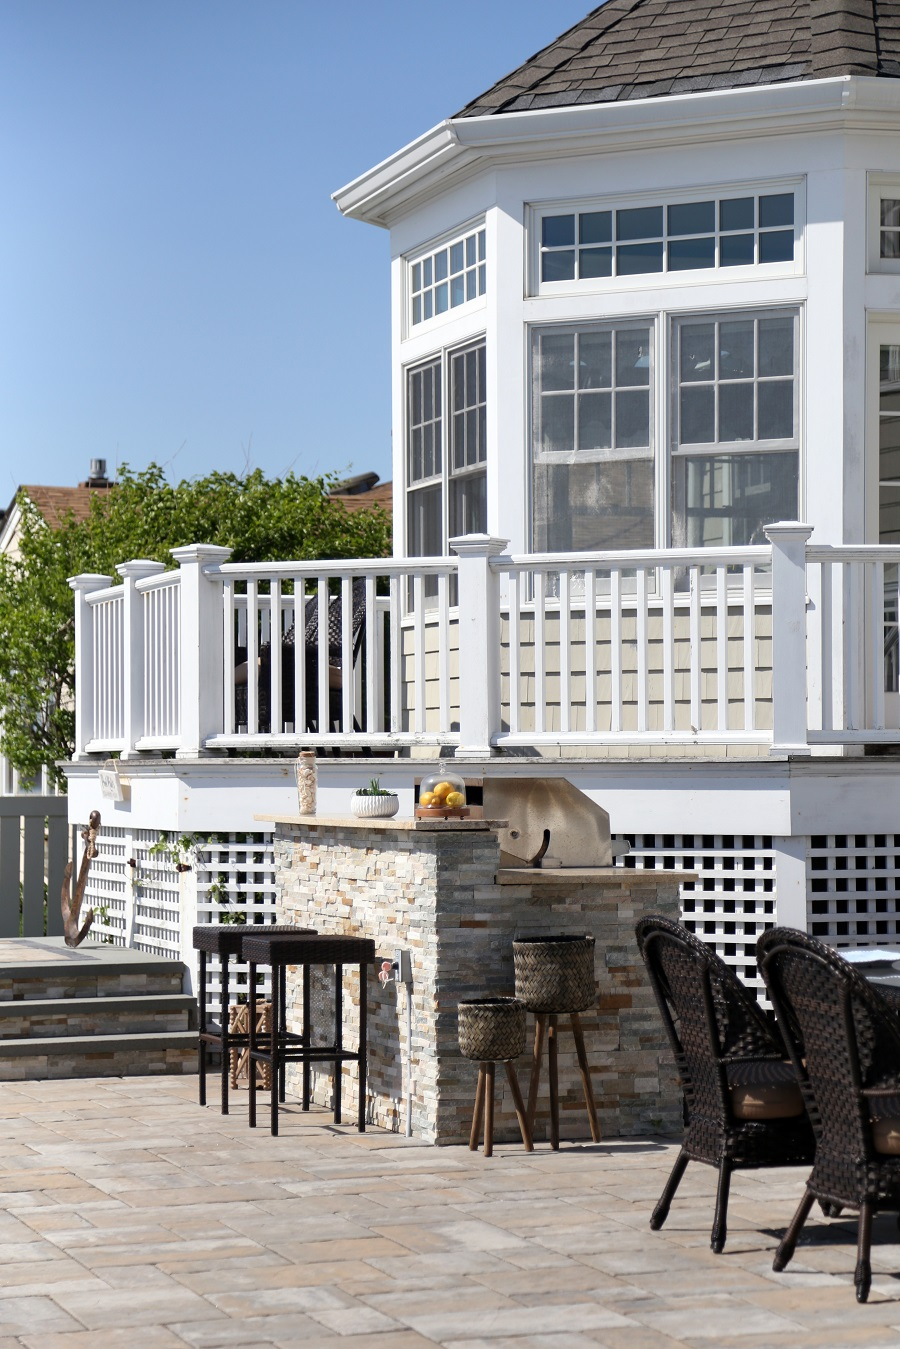 Patios with outdoor kitchen in Massapequa NY